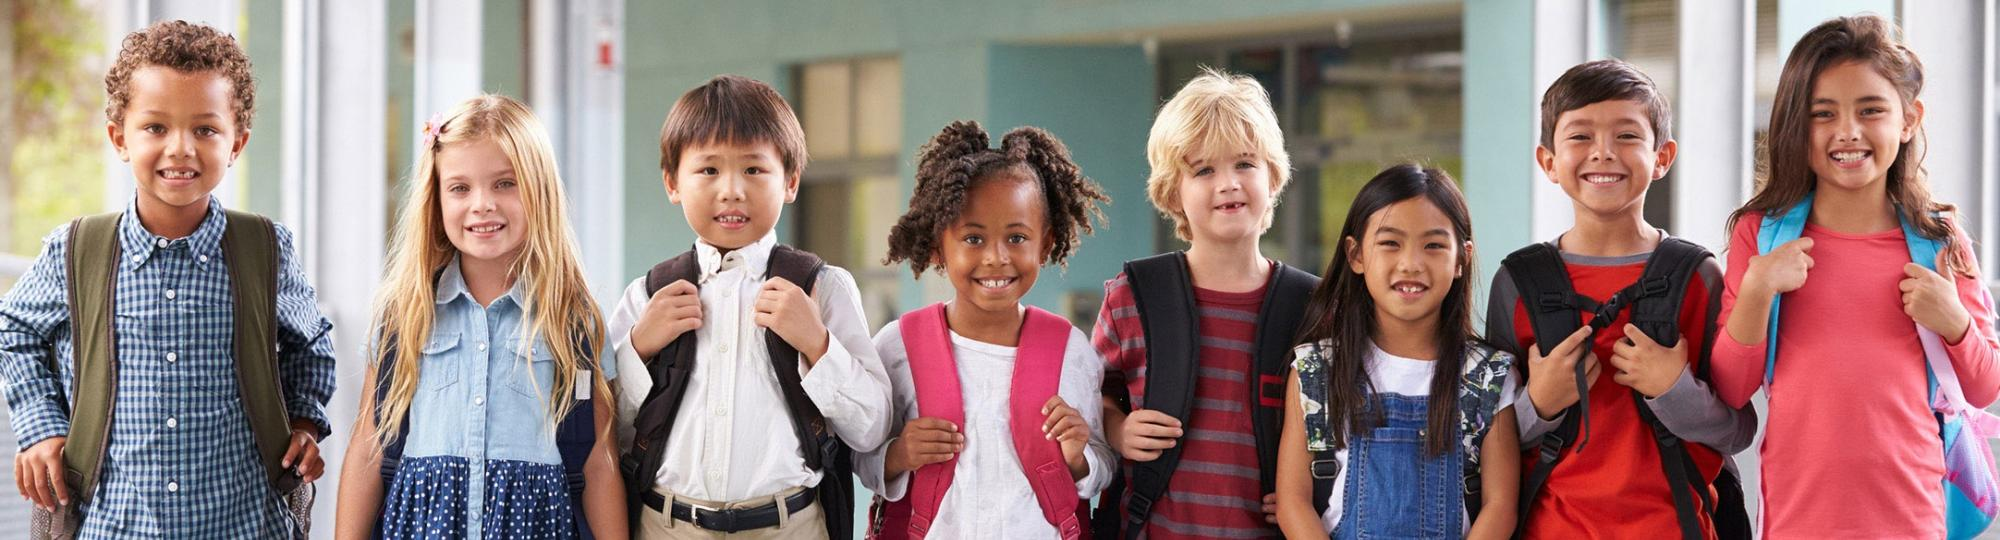 A row of smiling, diverse schoolchildren wearing backpacks